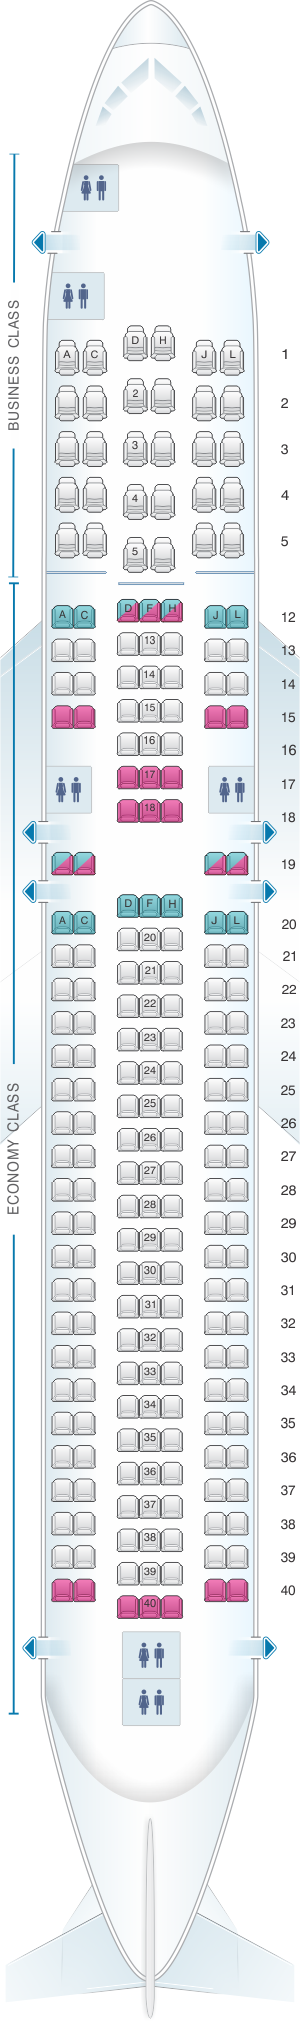 Seat map for Caribbean Airlines Boeing B767 300ER